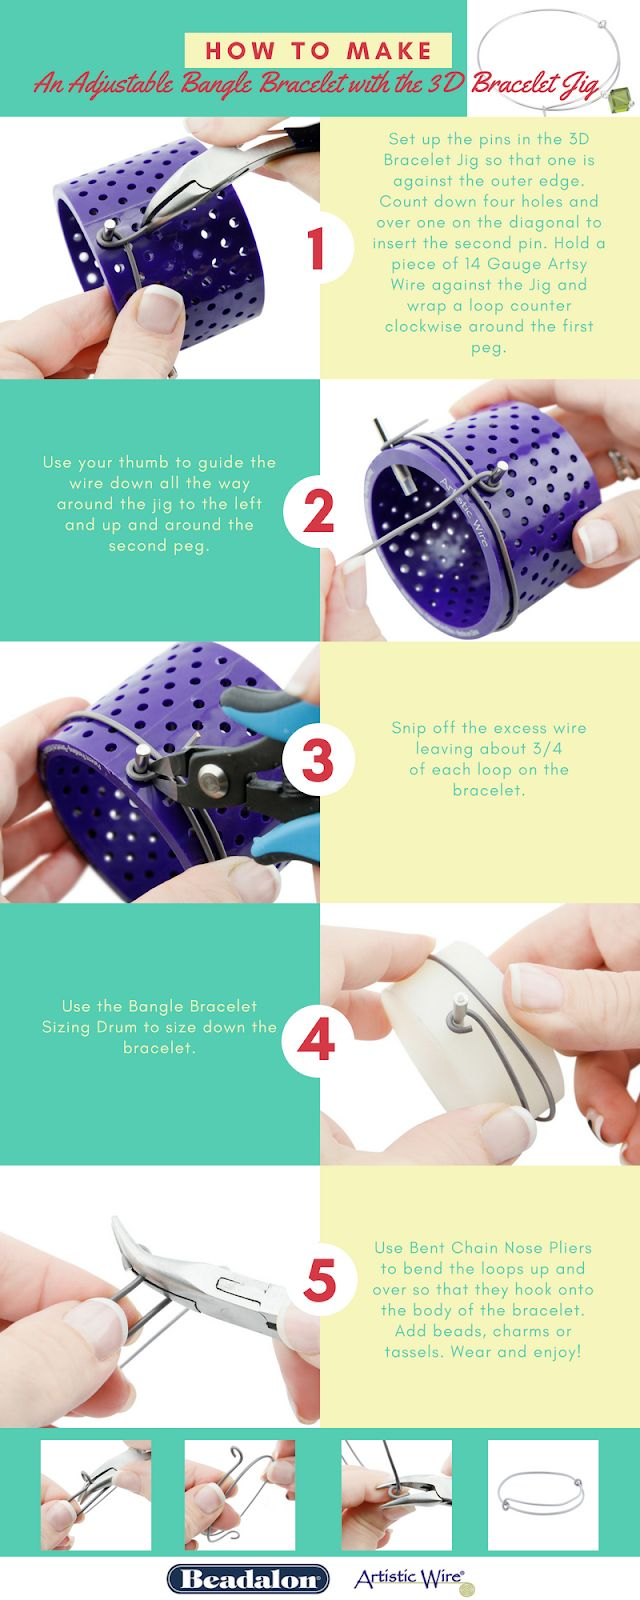 DIY Metal Jewelry : Learn to make Bangle Bracelets with Artistic ...